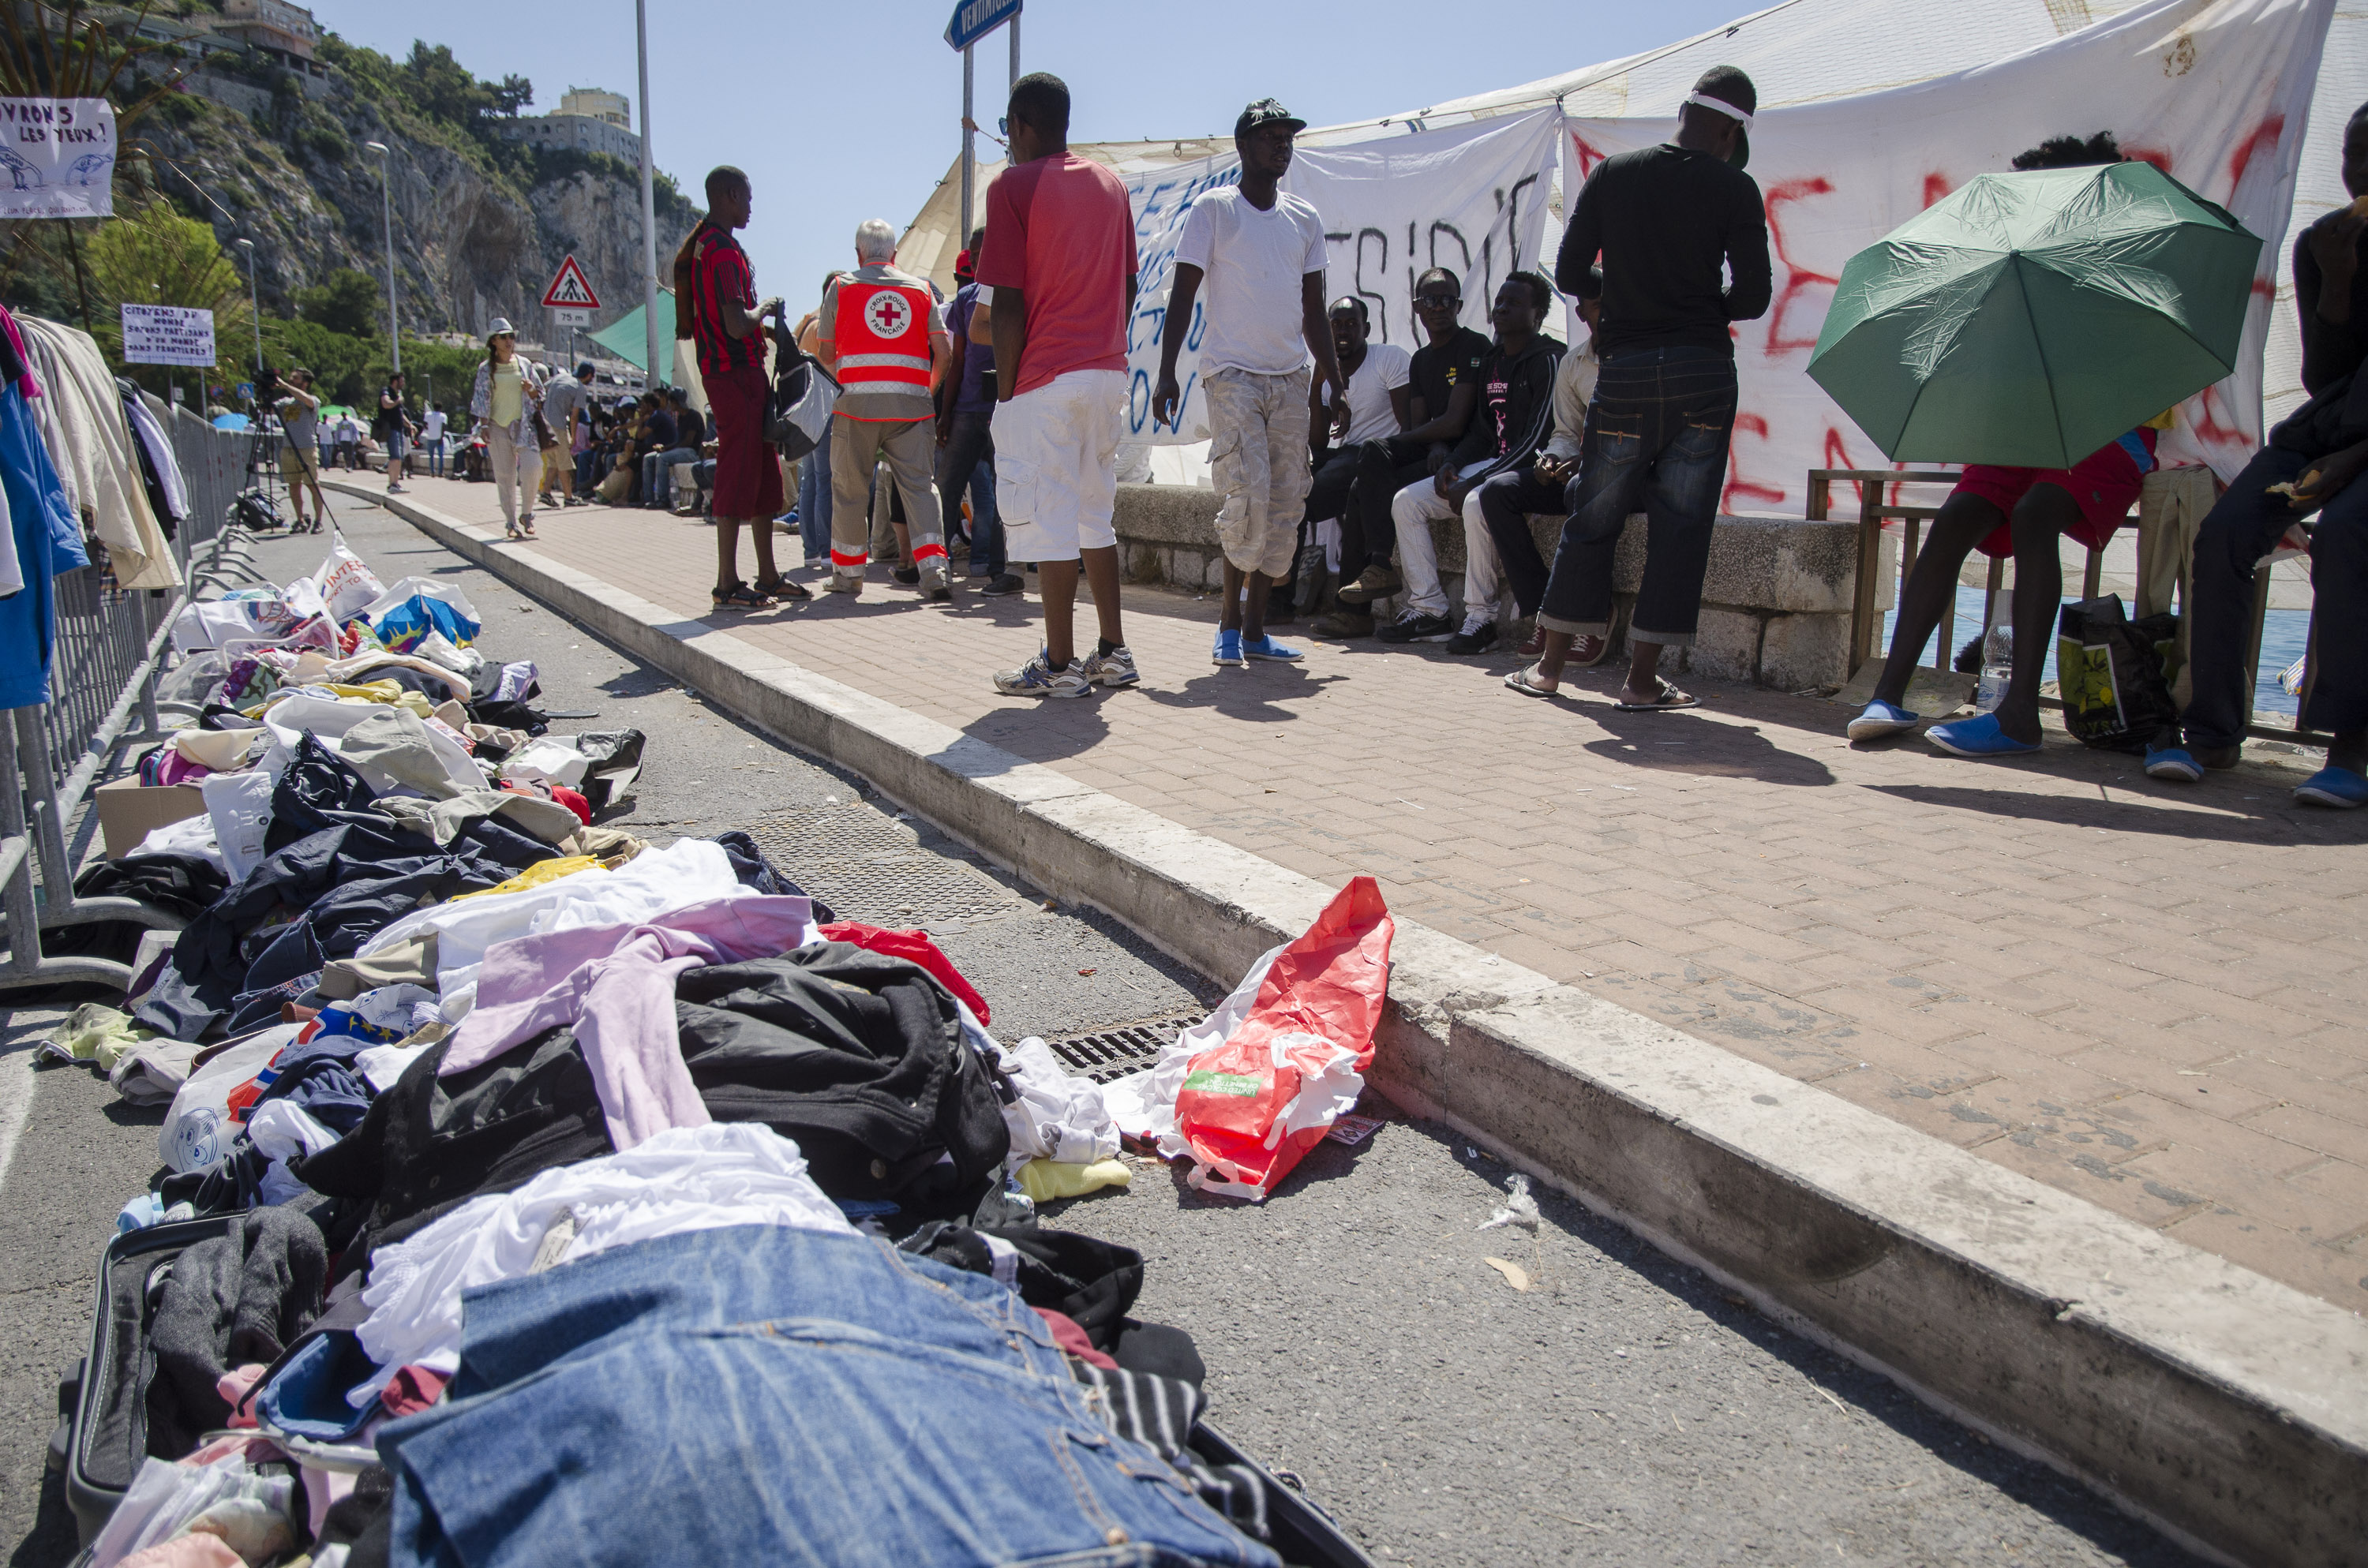 Italy-Refugees on the day after the forced evictions in Ventimiglia